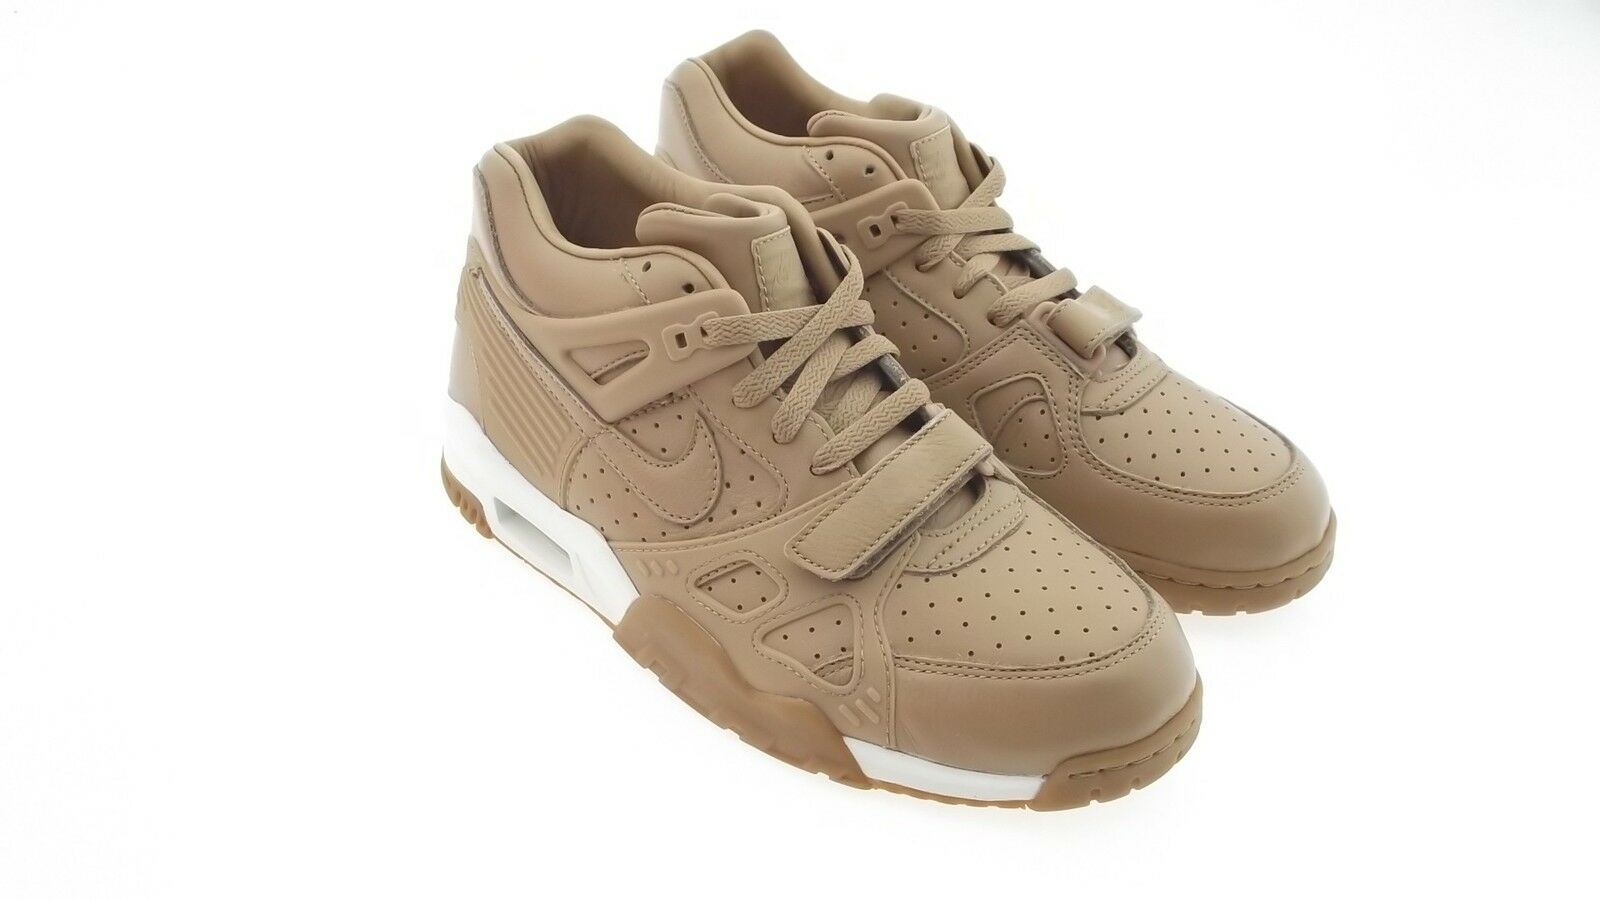 709989-200 Nike homme Air Trainer 3 PRM QS - sail Gum brown p shale sail - gum medium bro e02945